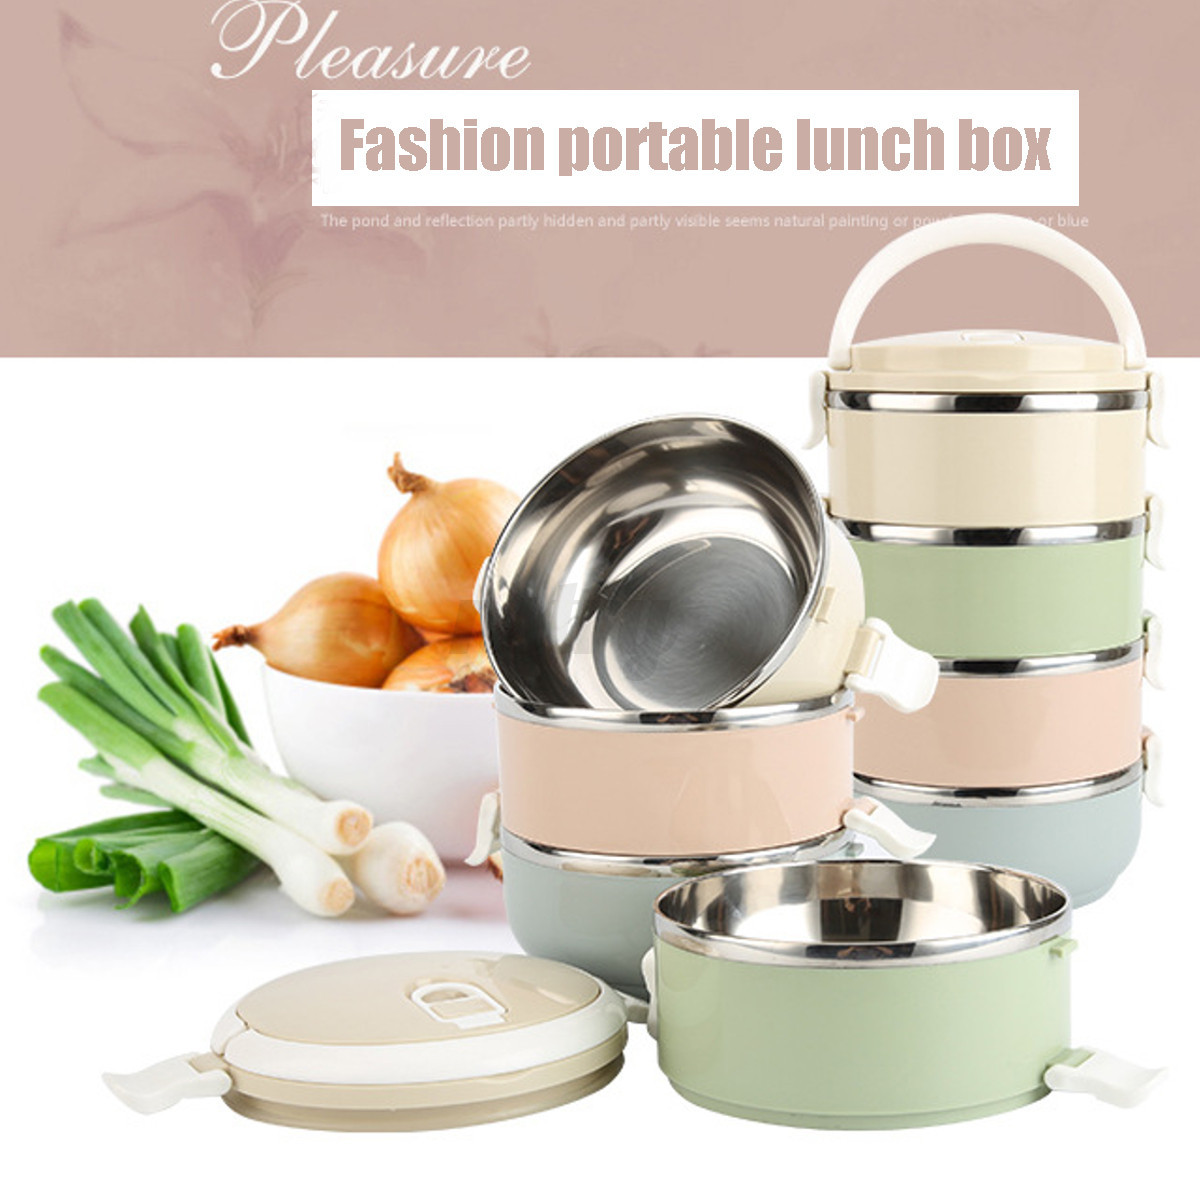 1 2 3 4 stainless steel metal bento lunch box insulated thermal food containers ebay. Black Bedroom Furniture Sets. Home Design Ideas